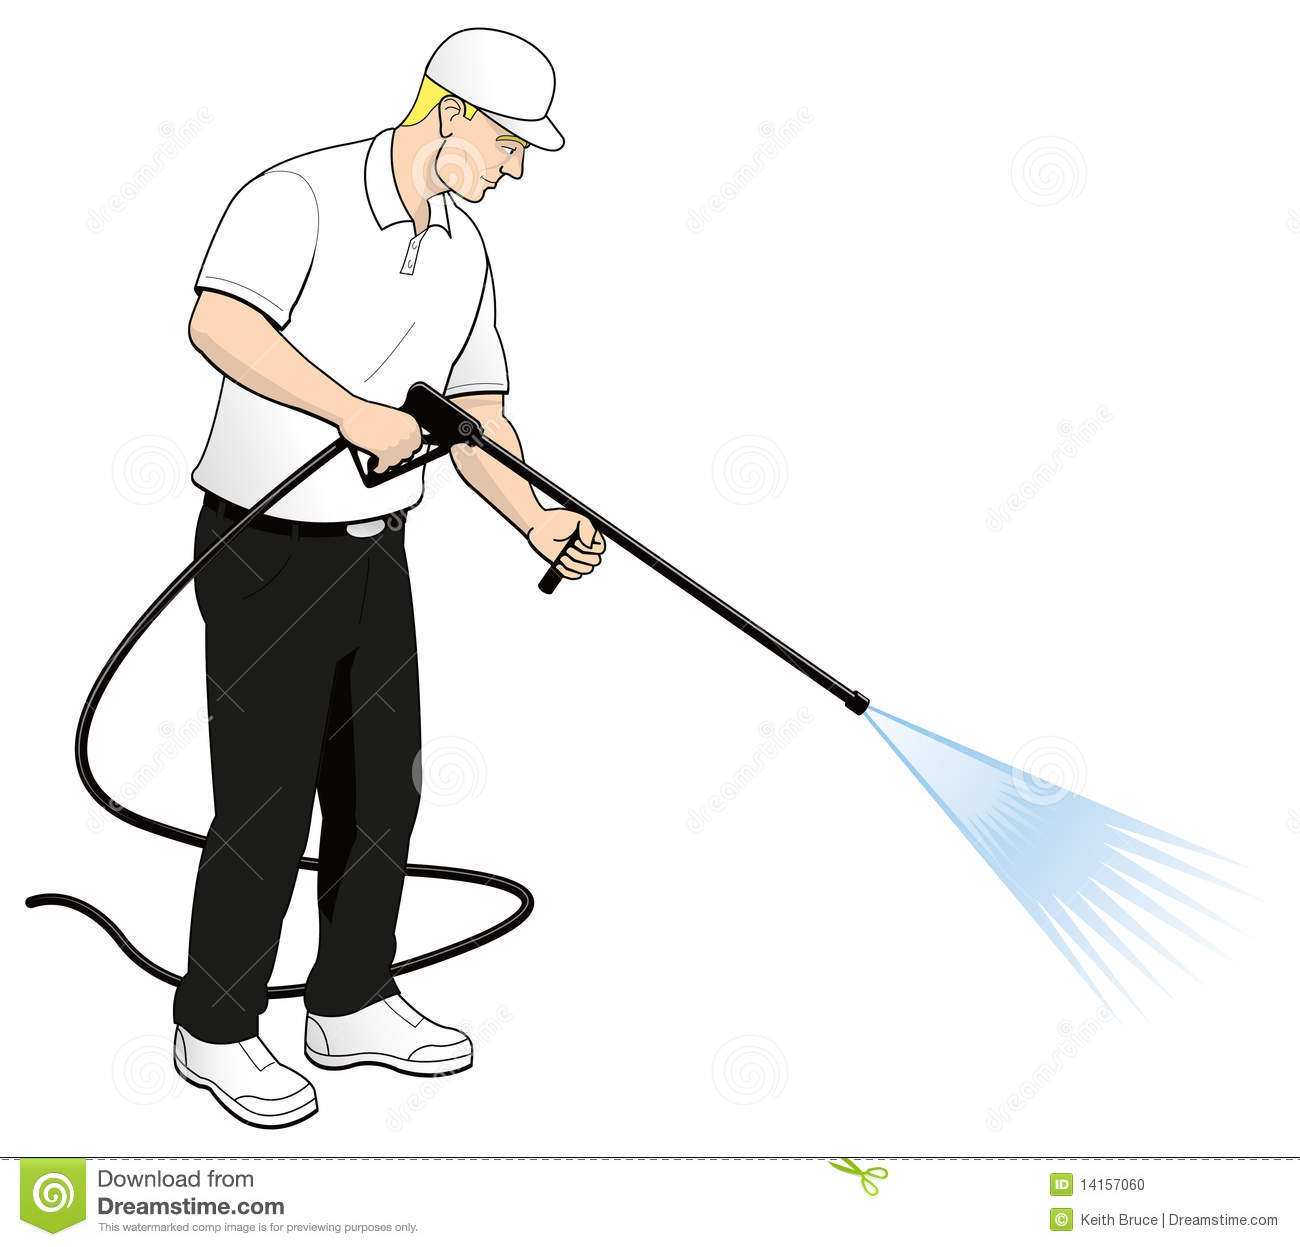 Very clean and professional artwork of a pressure/power washing ...